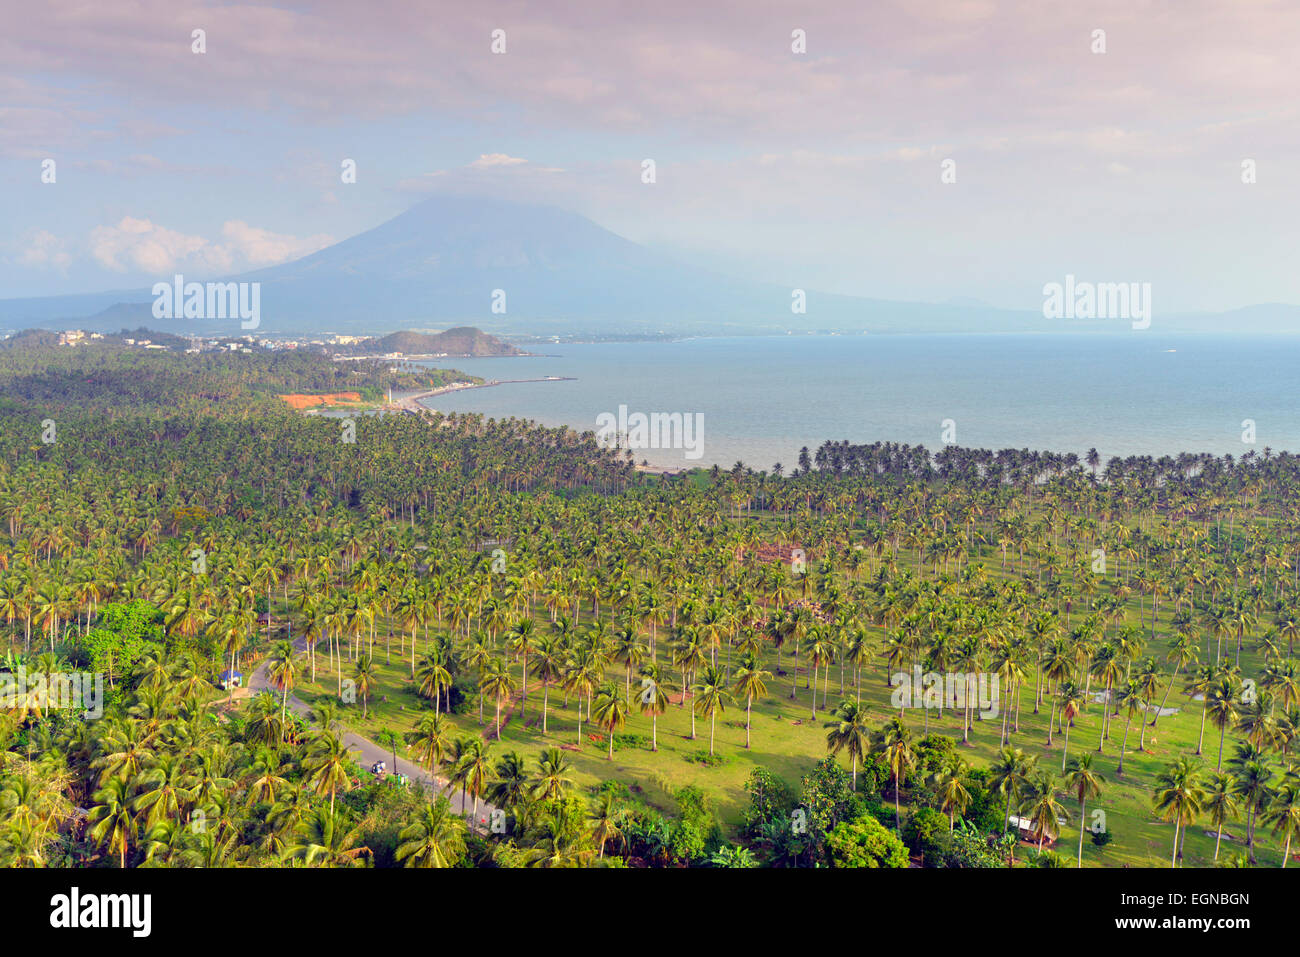 South East Asia, Philippines, south east Luzon, Legazpi, Mount Mayon Volcano - Stock Image